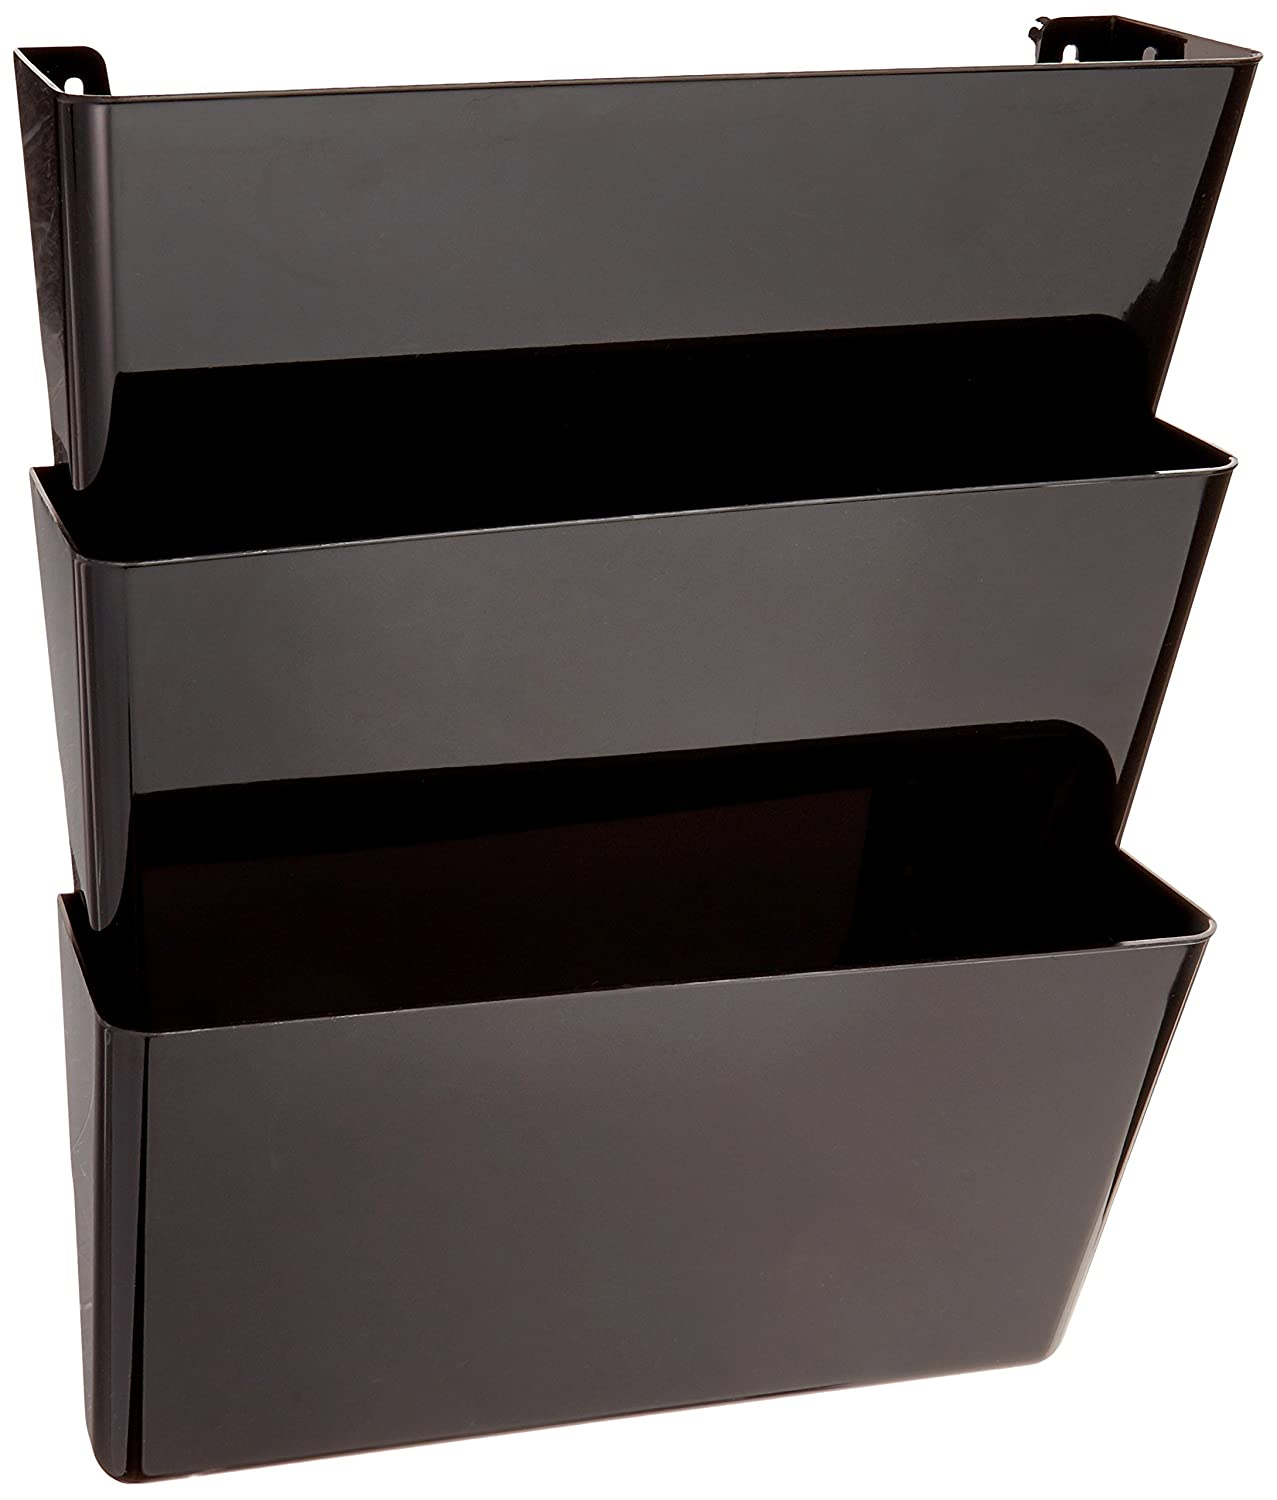 Stackable Wall File Organizer Set of 3 13W x 7H x 4D Recycled Content Letter Size Deflecto 93604 Sustainable Office DocuPocket Black